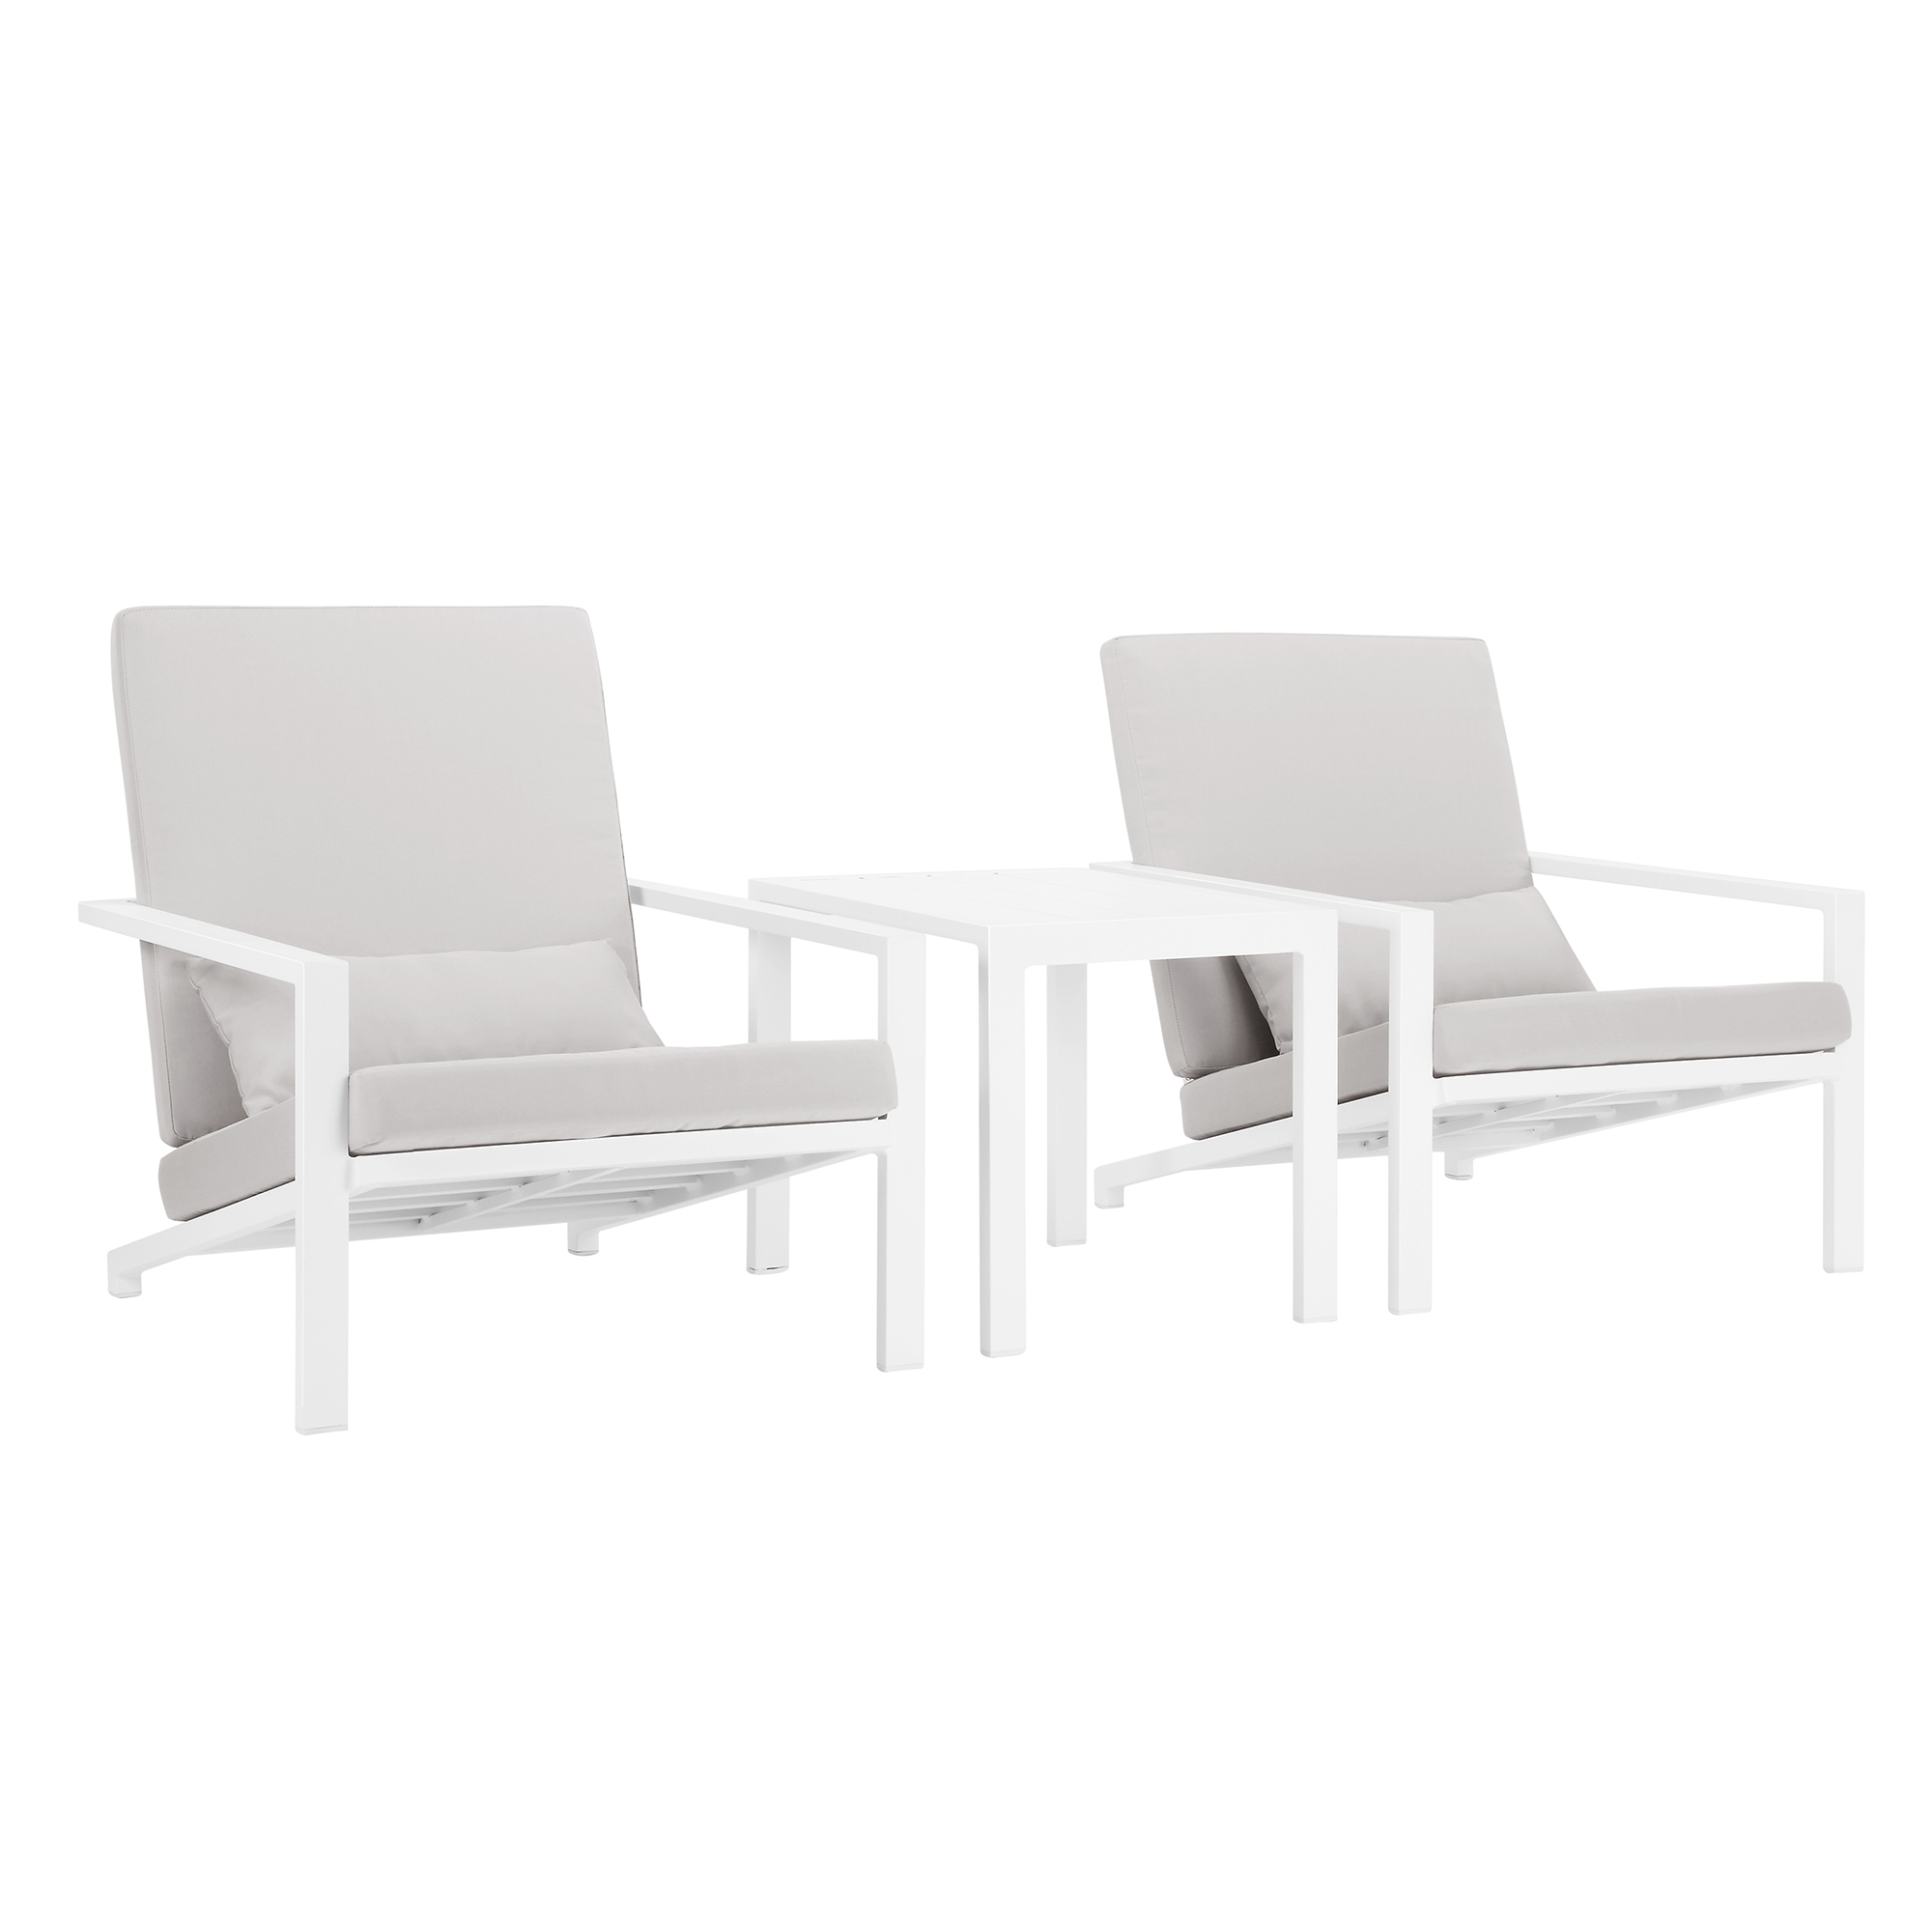 Grey Felix 2 Seater Outdoor Lounge Chair Table Set Temple Webster